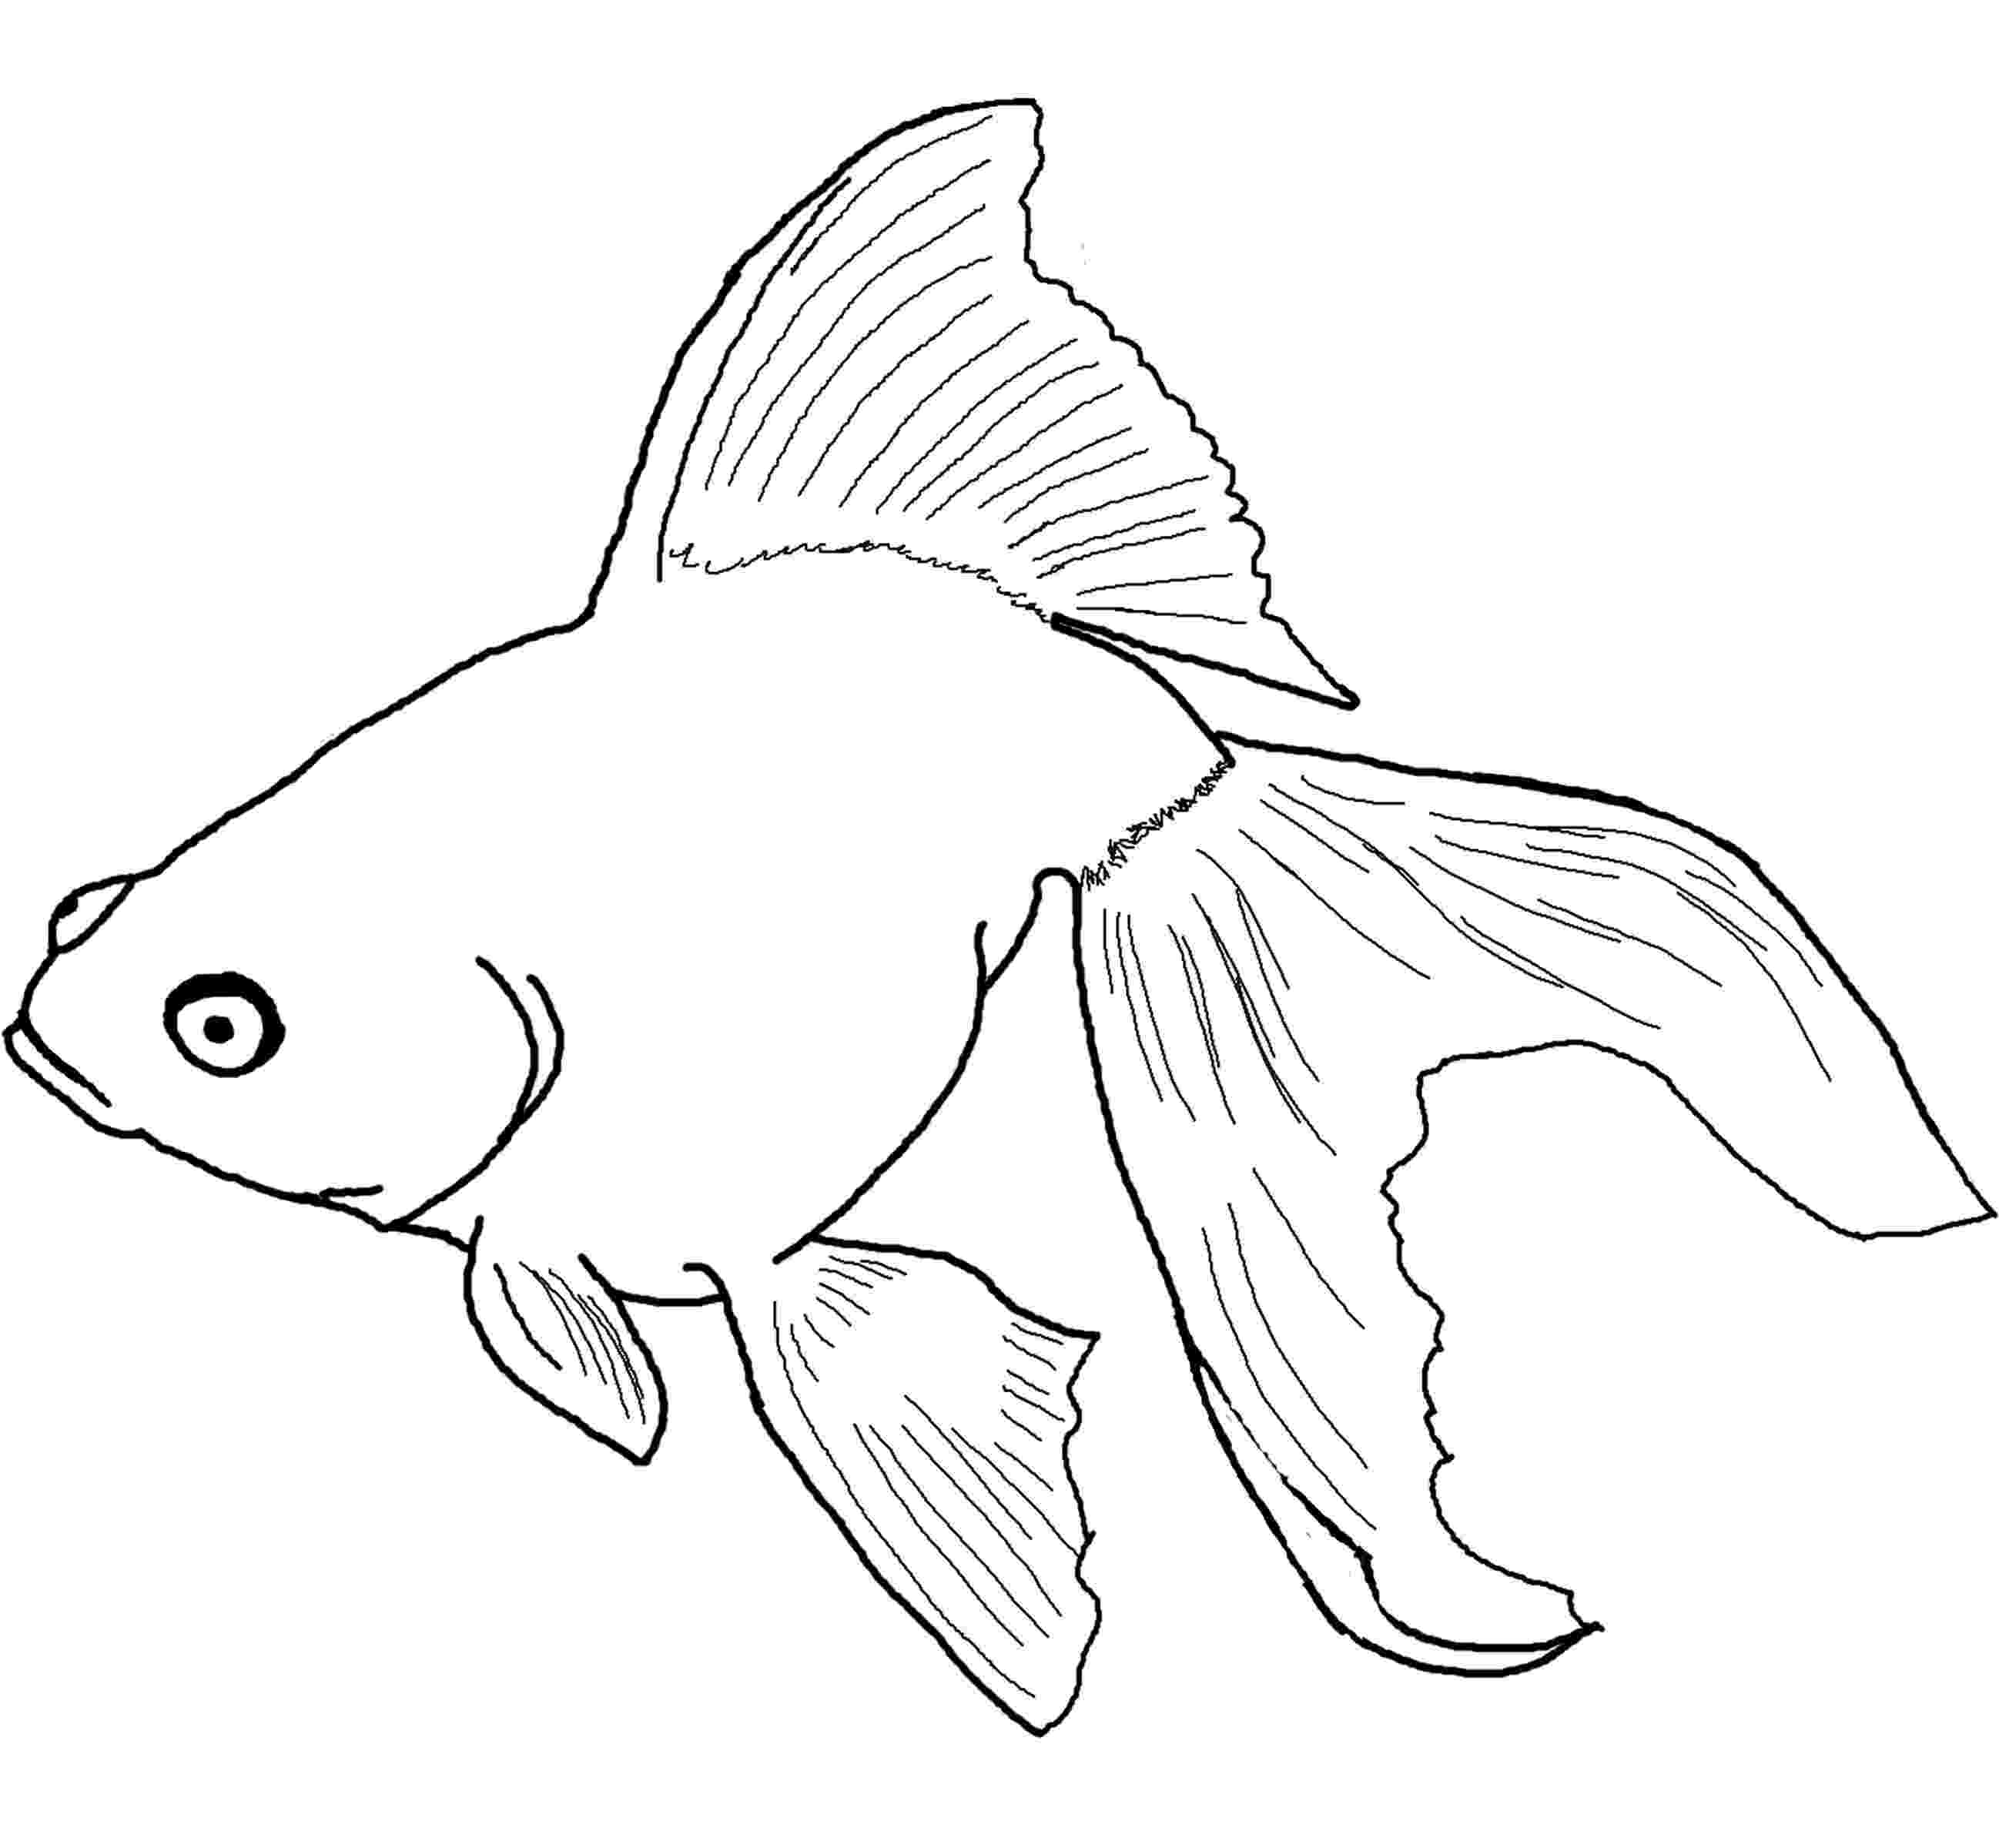 coloring pages of goldfish printable goldfish coloring pages for kids cool2bkids goldfish pages coloring of 1 1